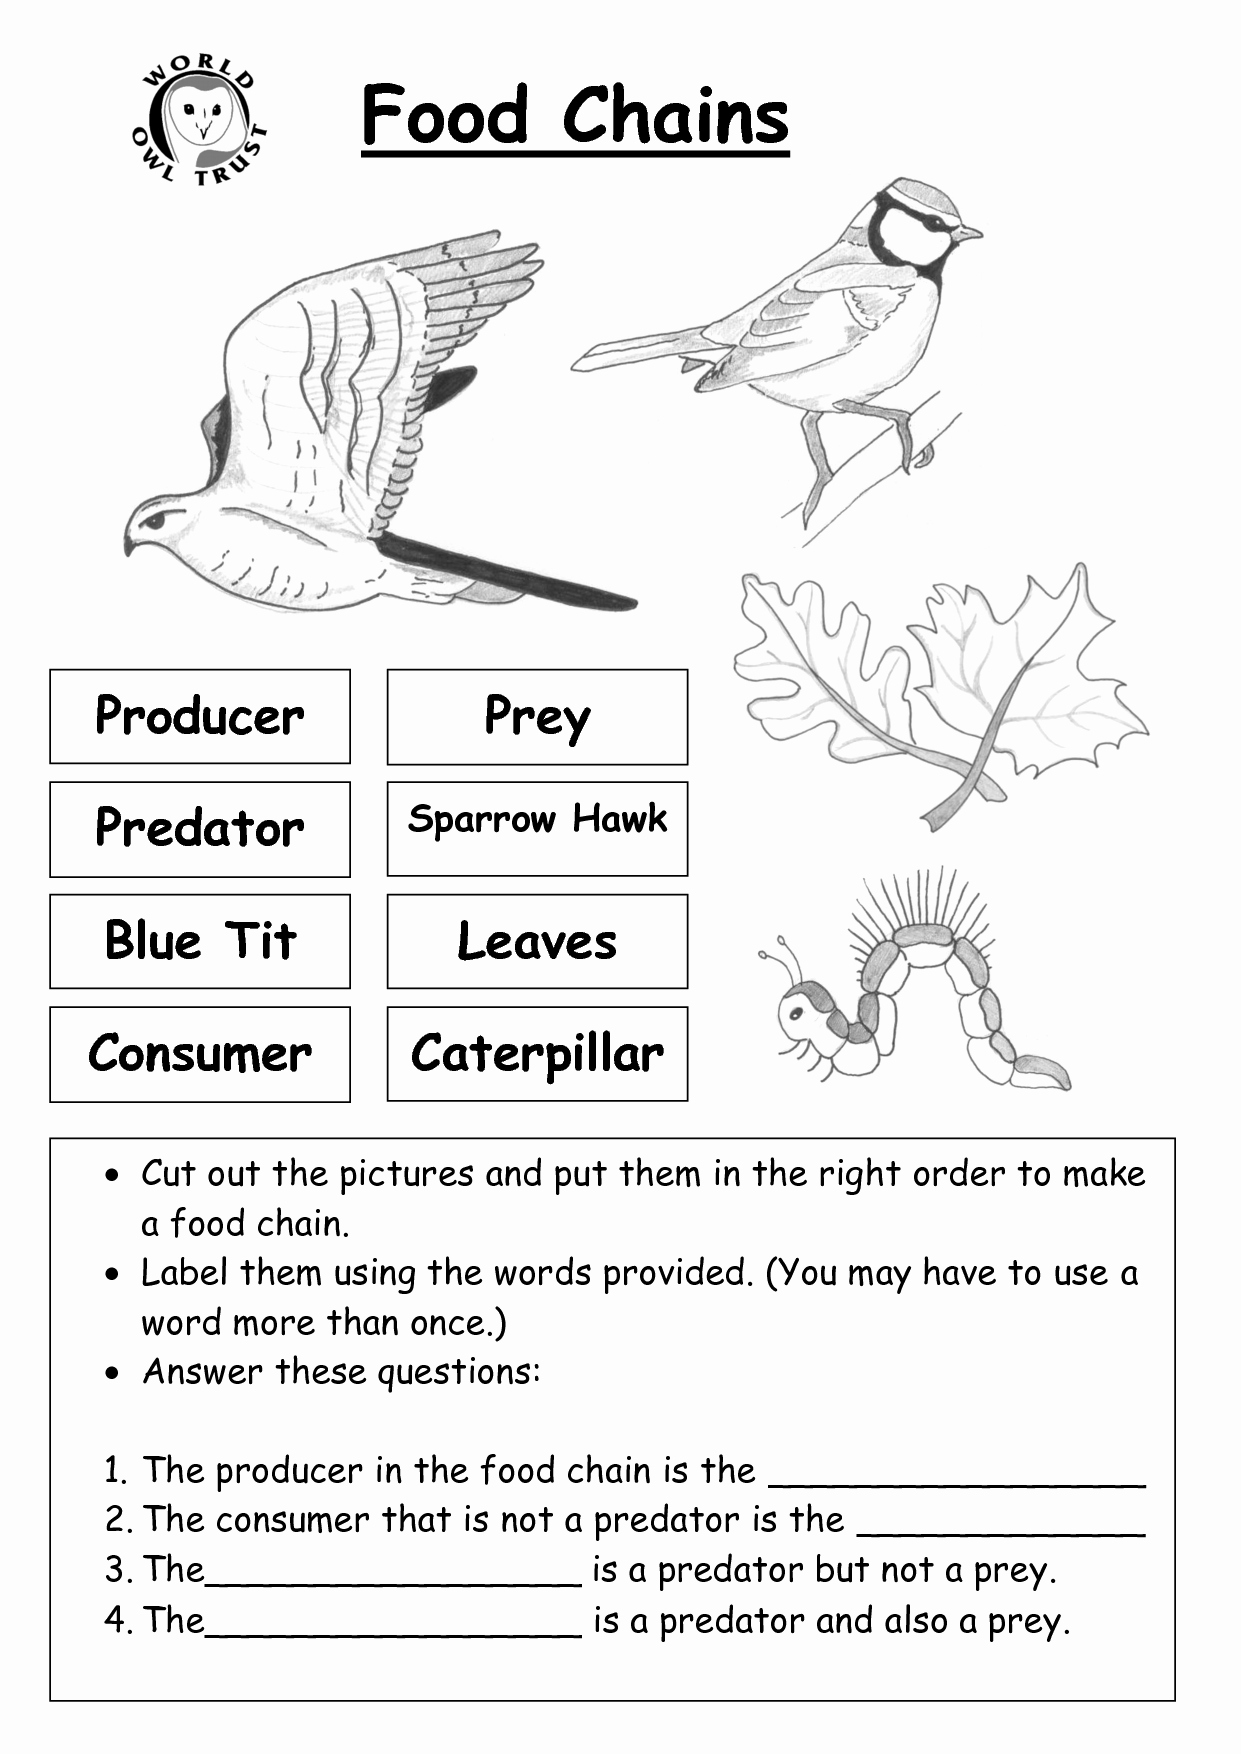 Food Chain Worksheet Answers Fresh Question Worksheet Category Page 2 Worksheeto